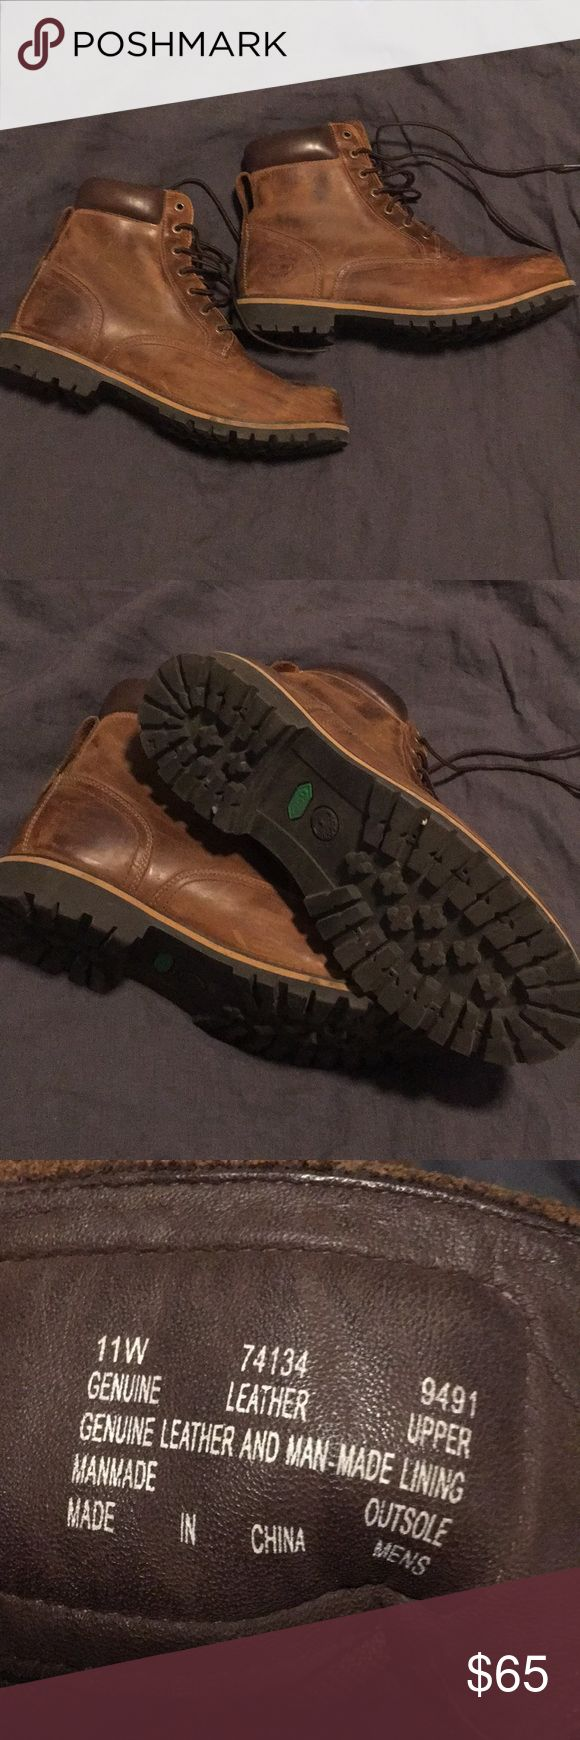 TIMBERLAND Boots - Size 11 - Mens Brown leather Timberland boots, perfect for outdoor activities like hiking and adventures. Timberland Shoes Boots